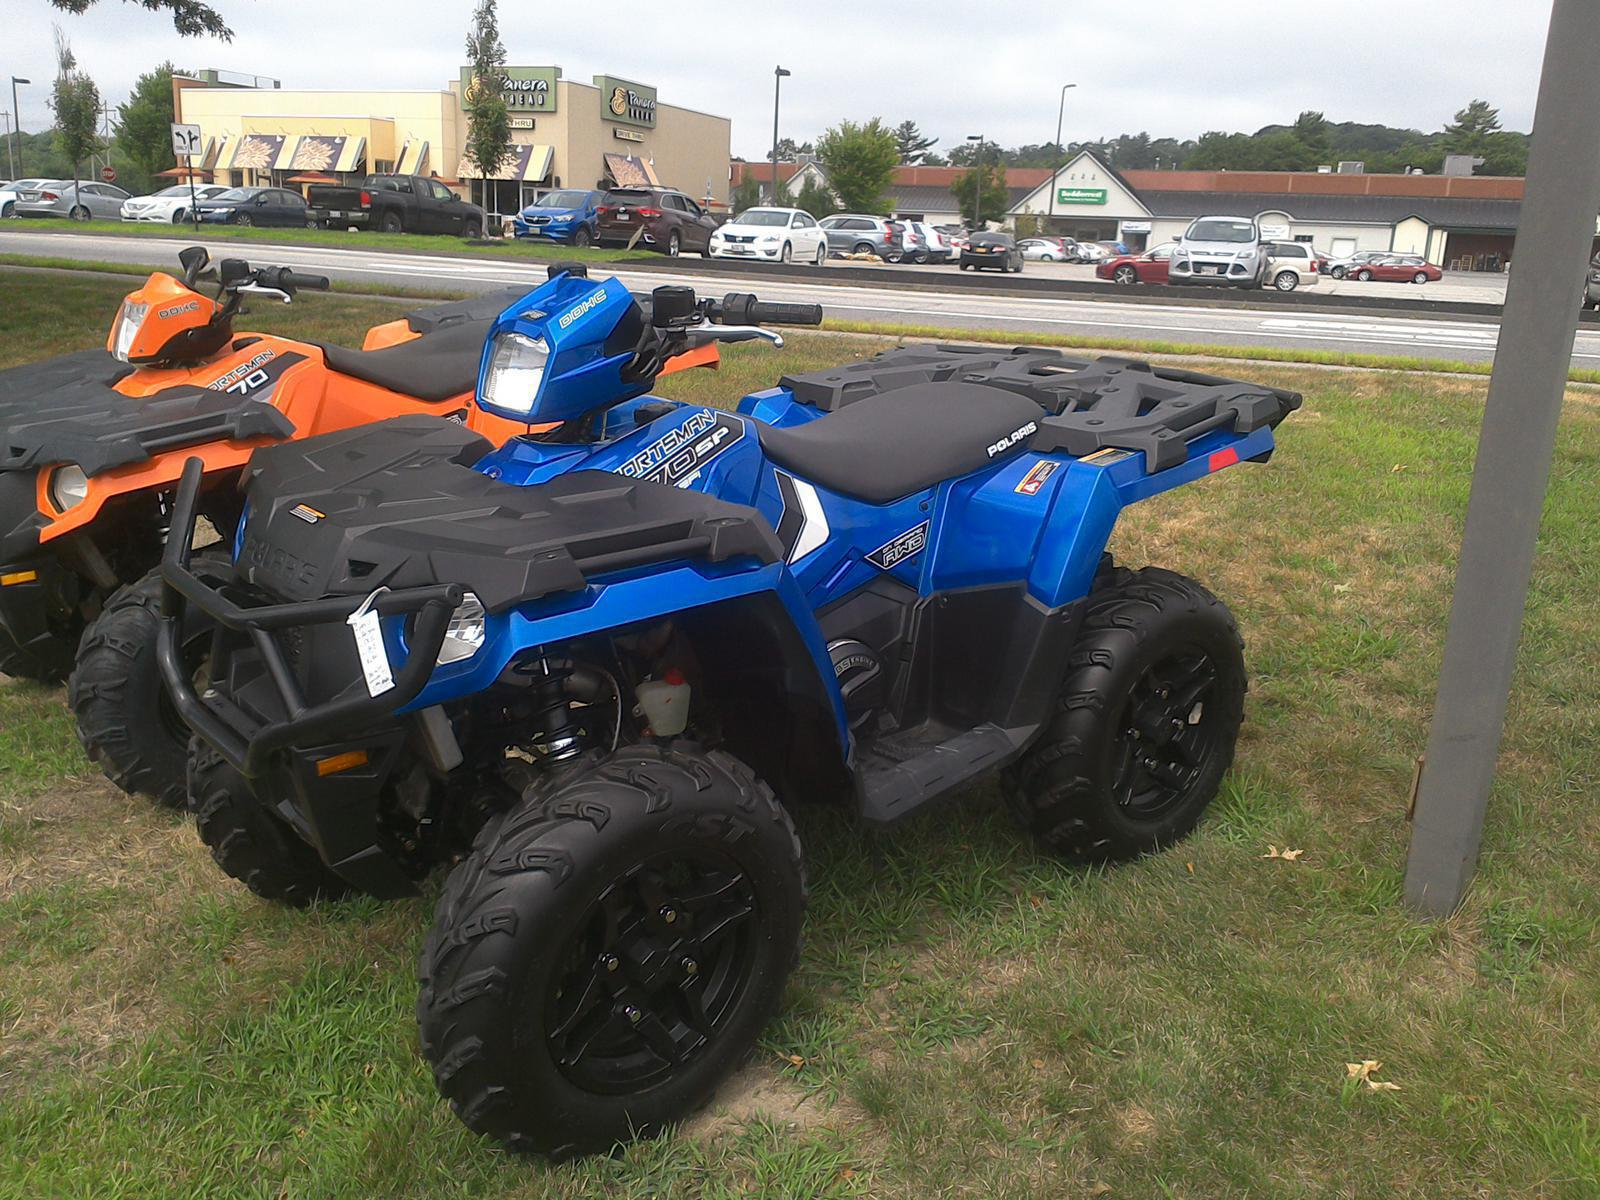 2018 polaris industries sportsman� 570 sp - radar blue